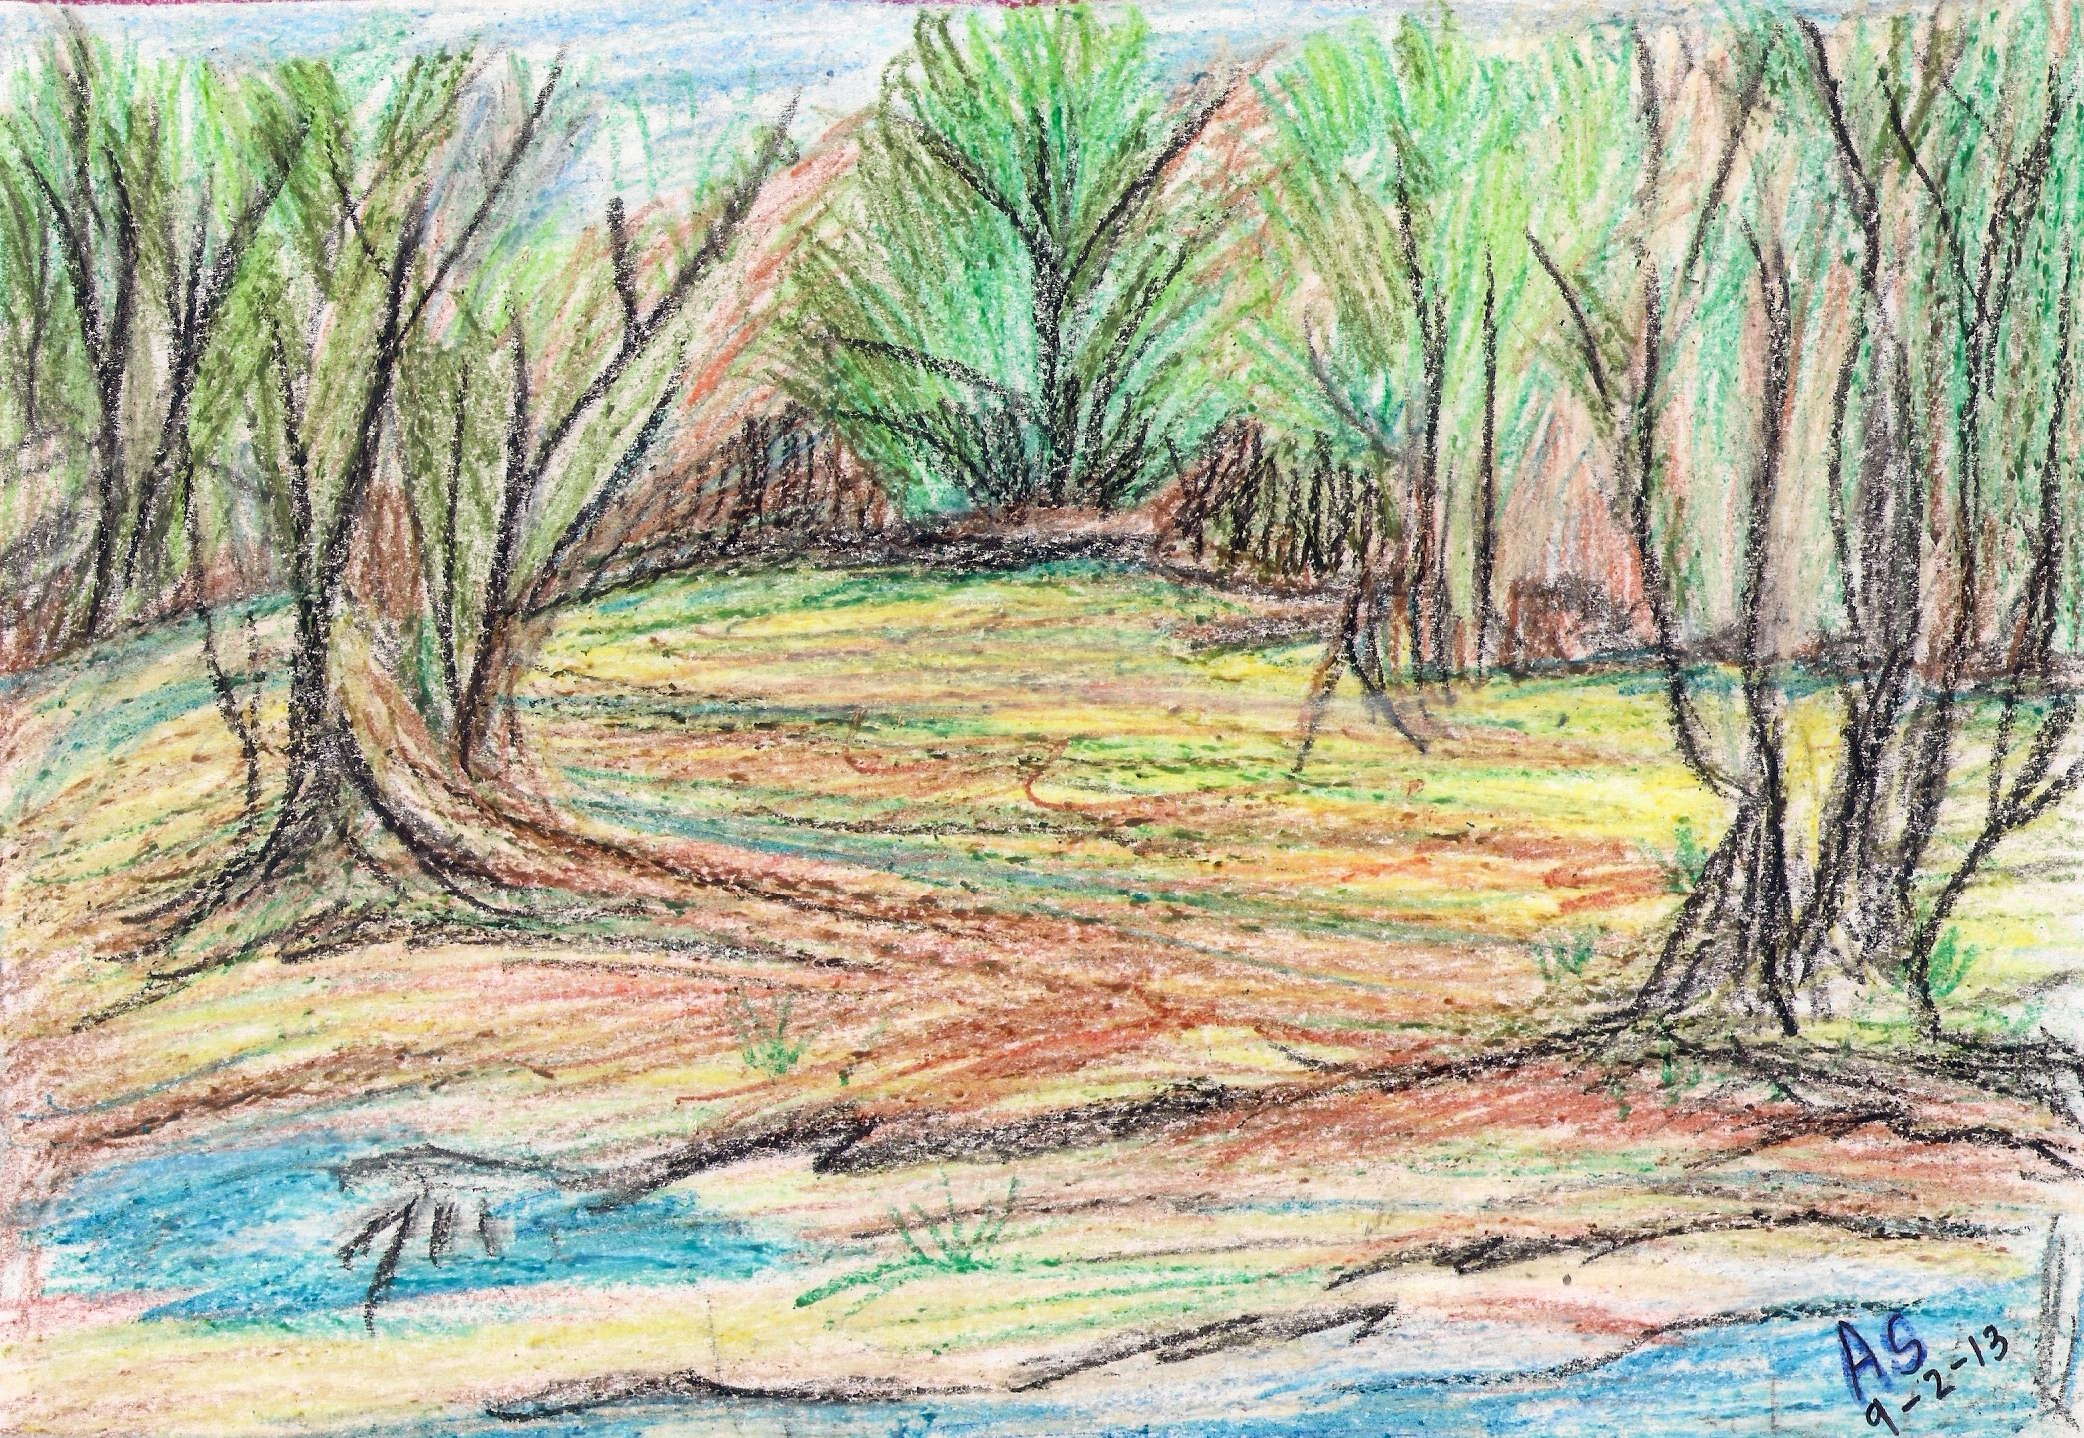 Drawn scenery crayon #crayons A Wax in #painting